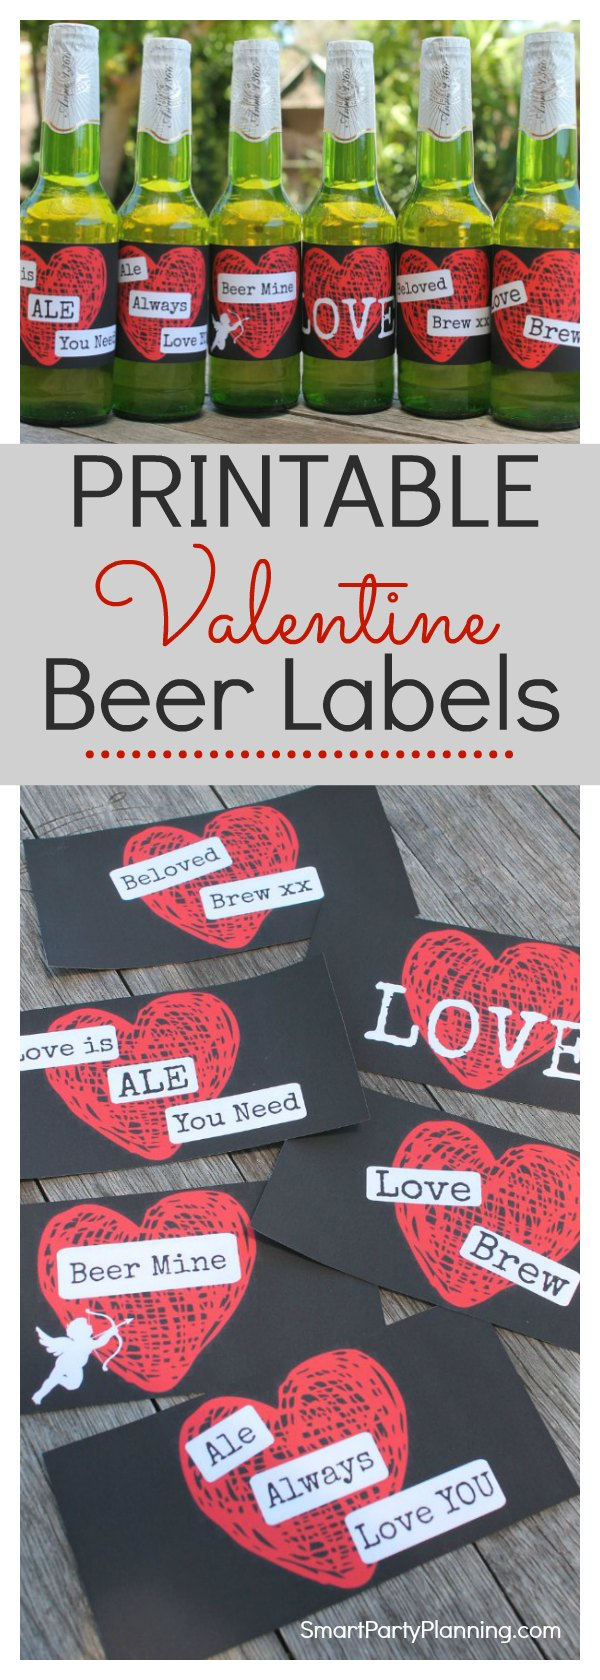 Printable Valentine Beer Labels